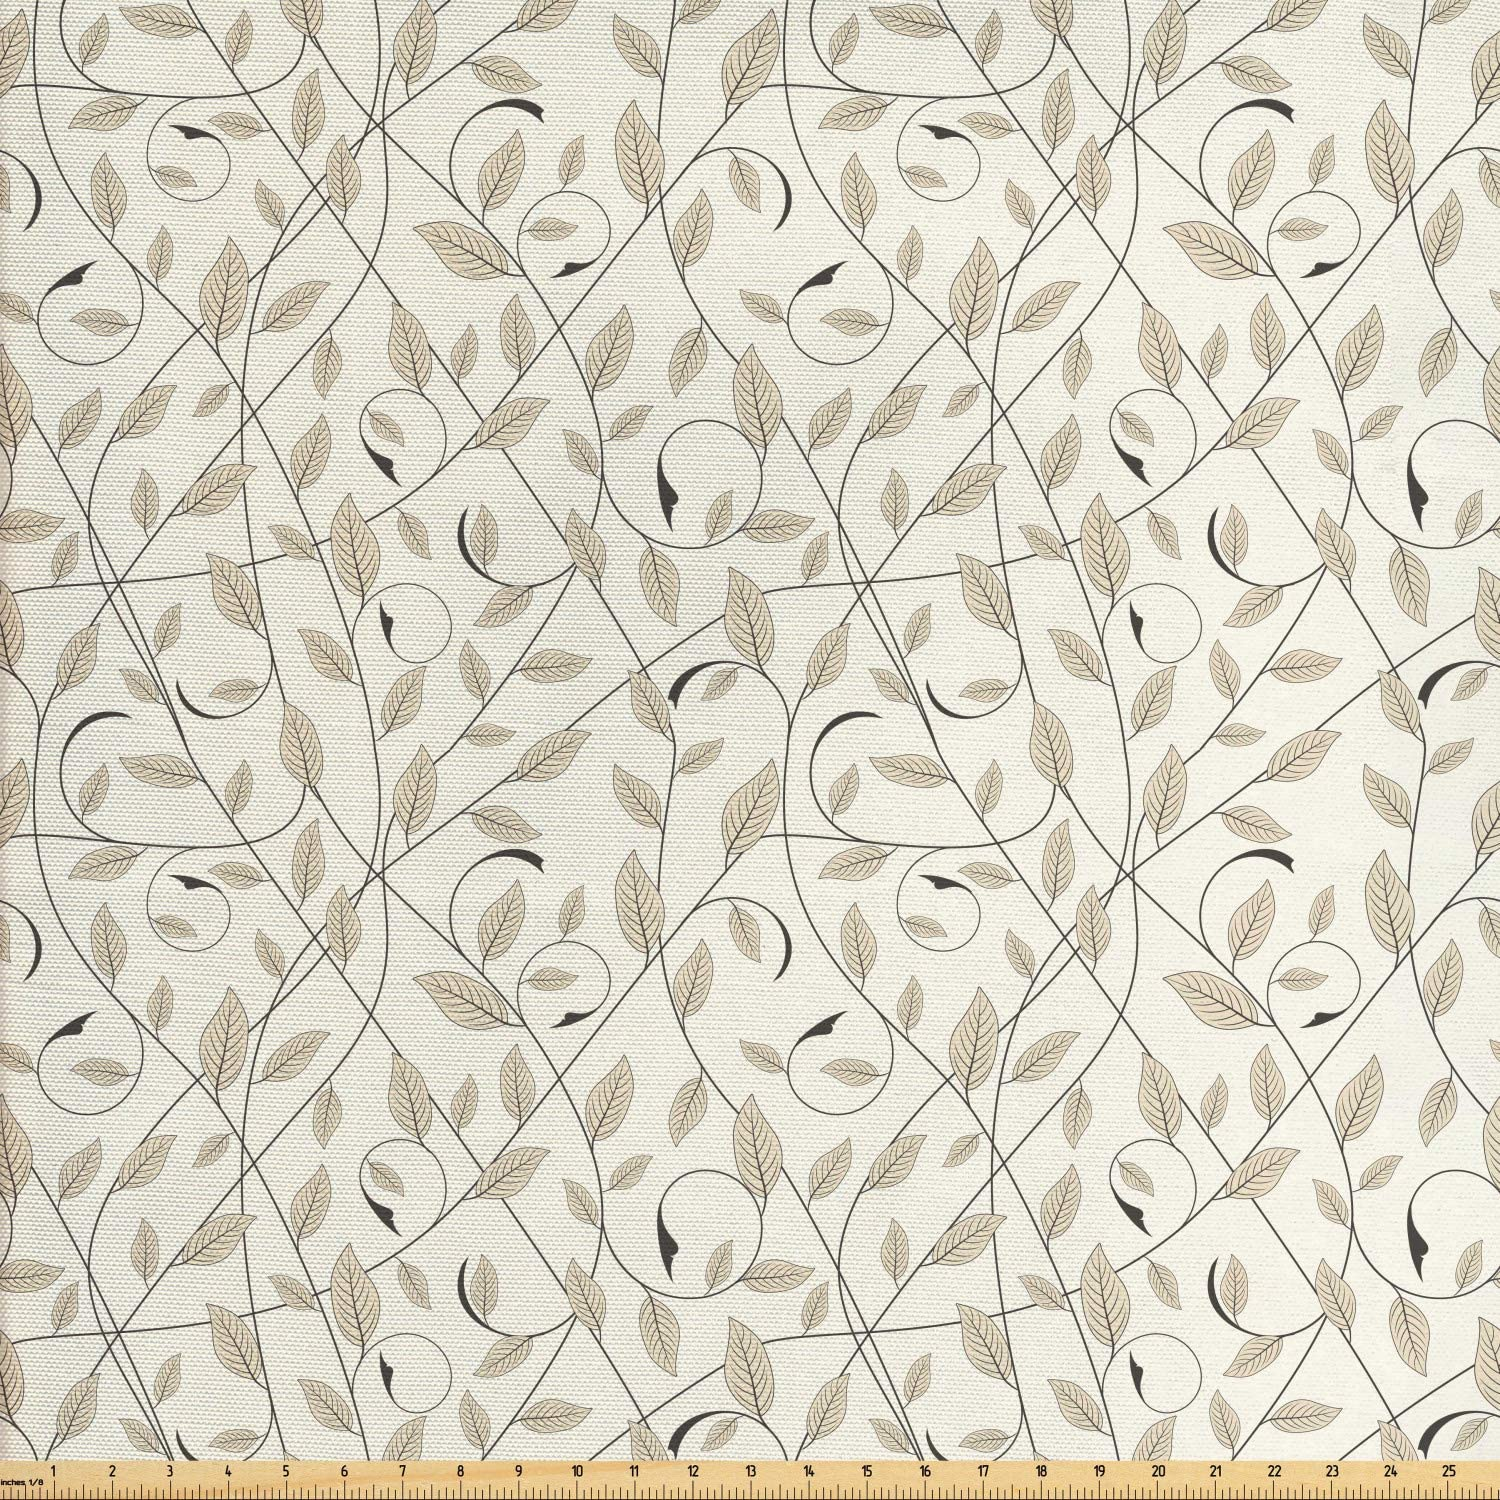 Ambesonne Floral Fabric by The Yard, Illustration of Curling Branches with Striped Leaves Botanical Ornaments, Decorative Fabric for Upholstery and Home Accents, 1 Yard, Eggshell Pale Sepia